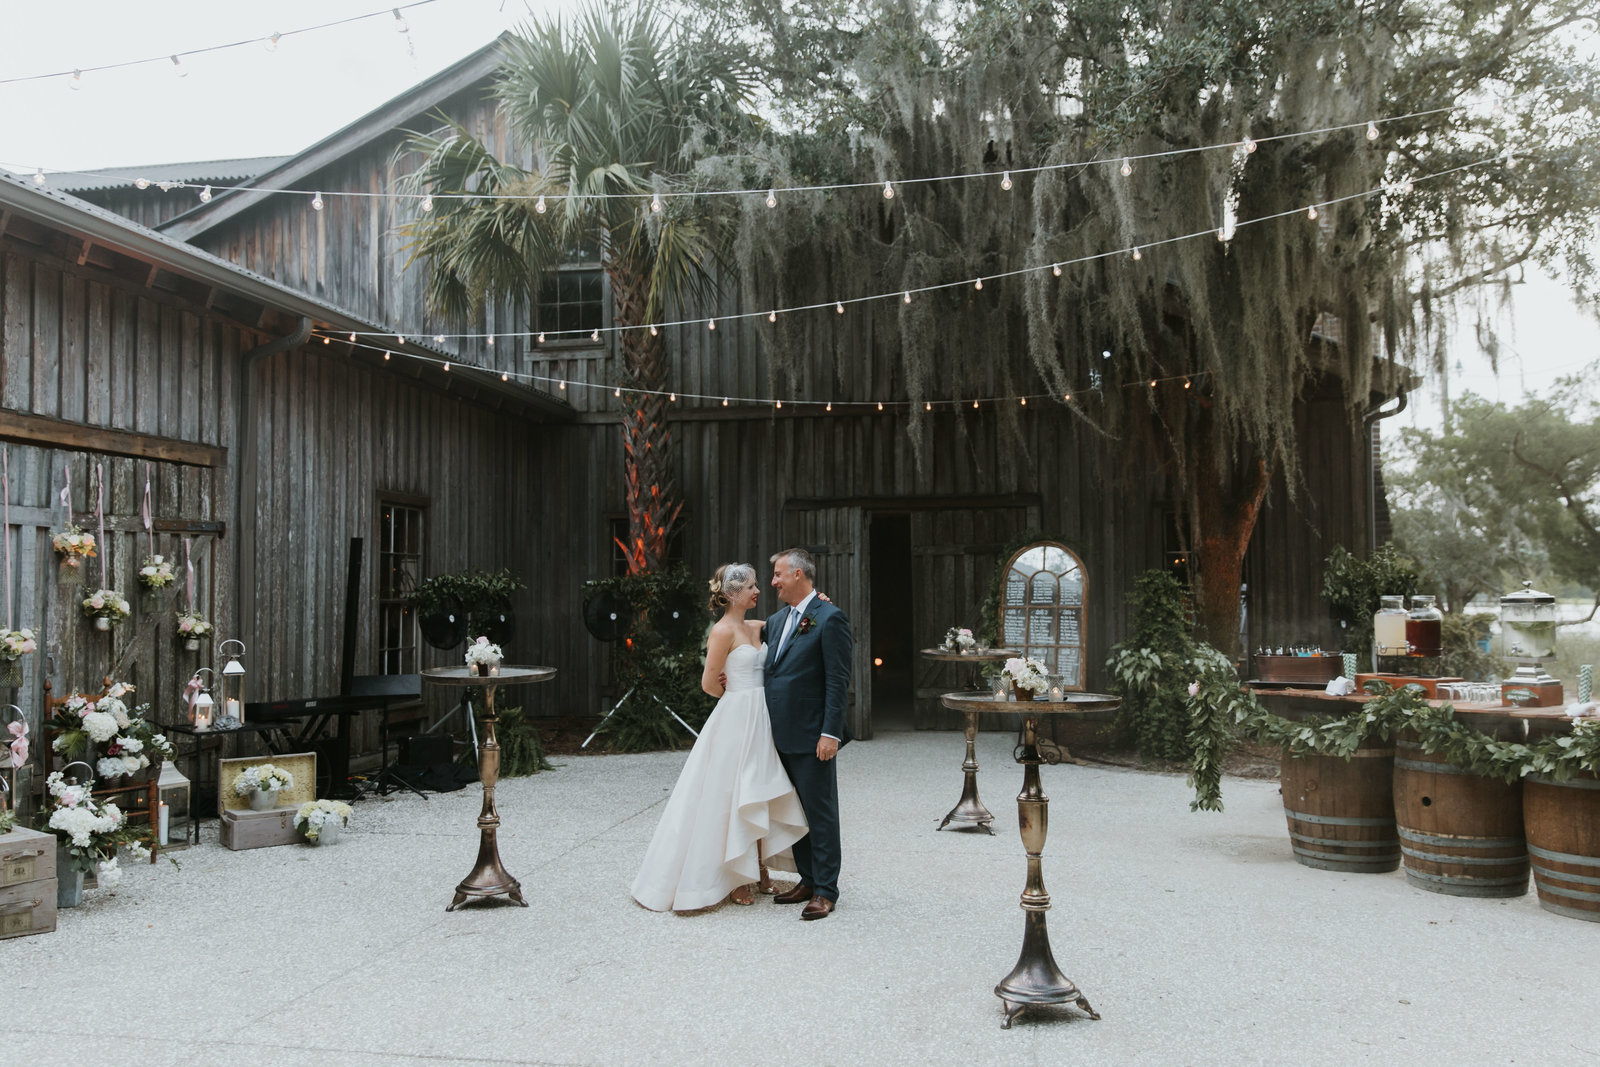 Boone-Hall-Plantation-Charleston-SC-wedding-portrait-photography-33